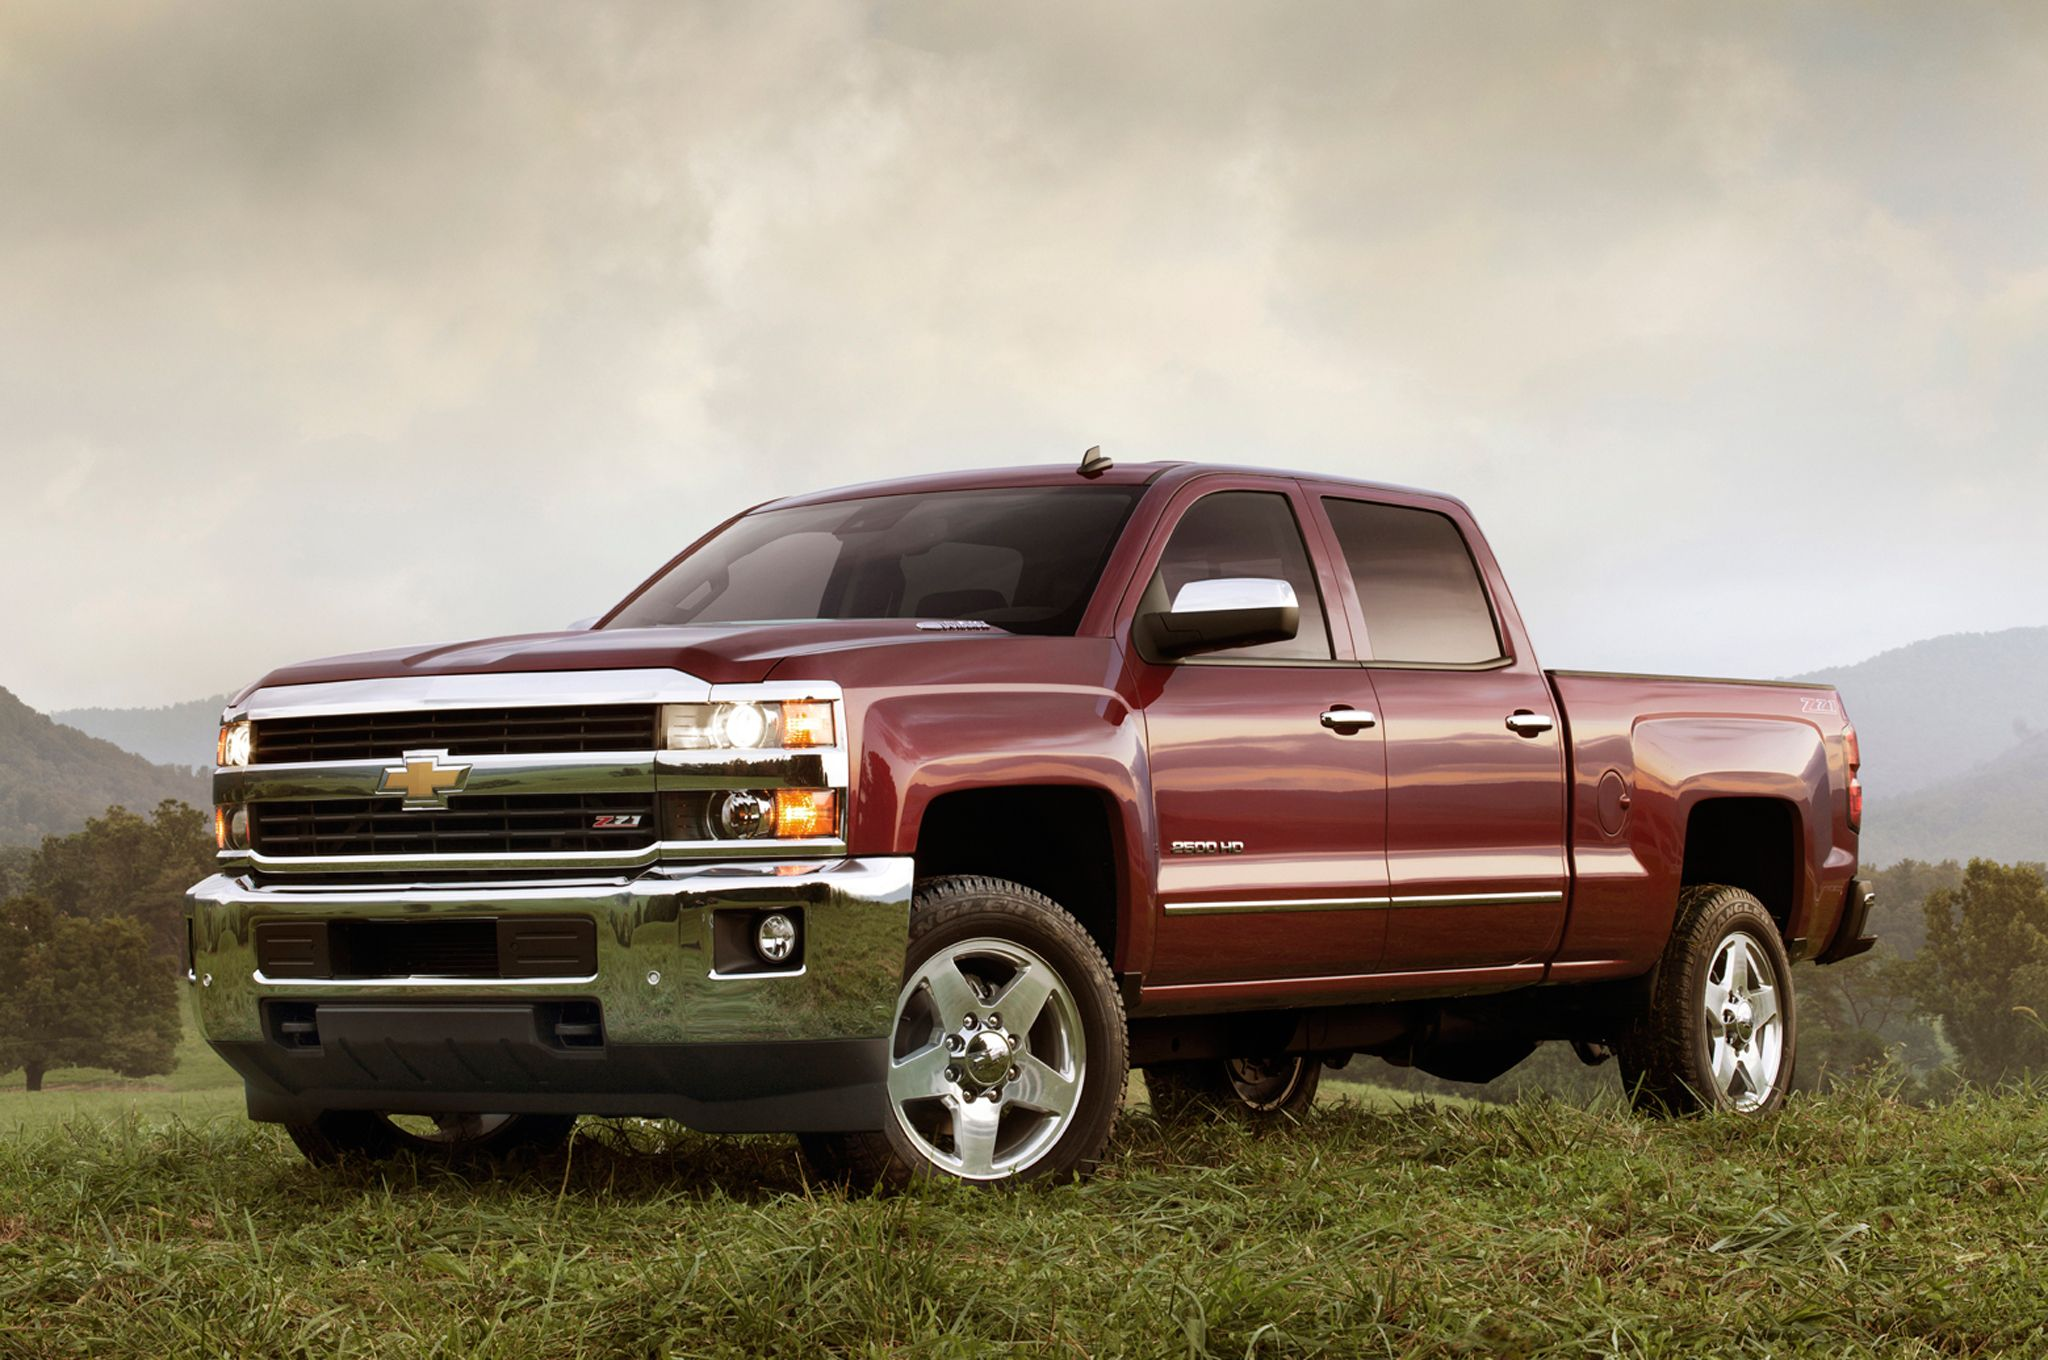 2015 chevrolet silverado 2500hd z71 front view